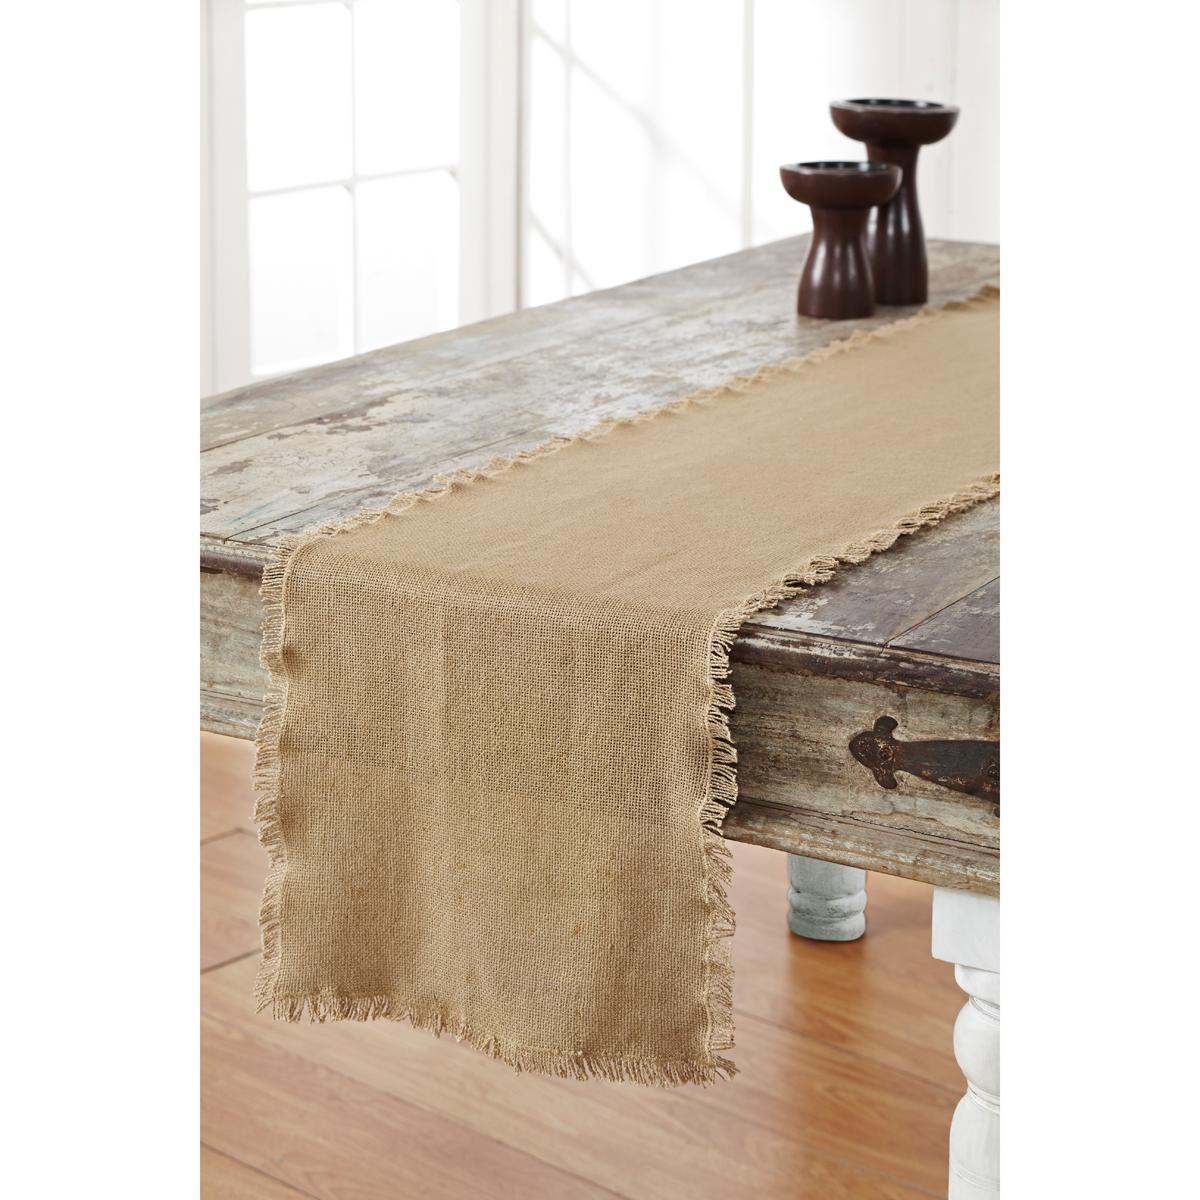 cotton burlap table runner choice of 4